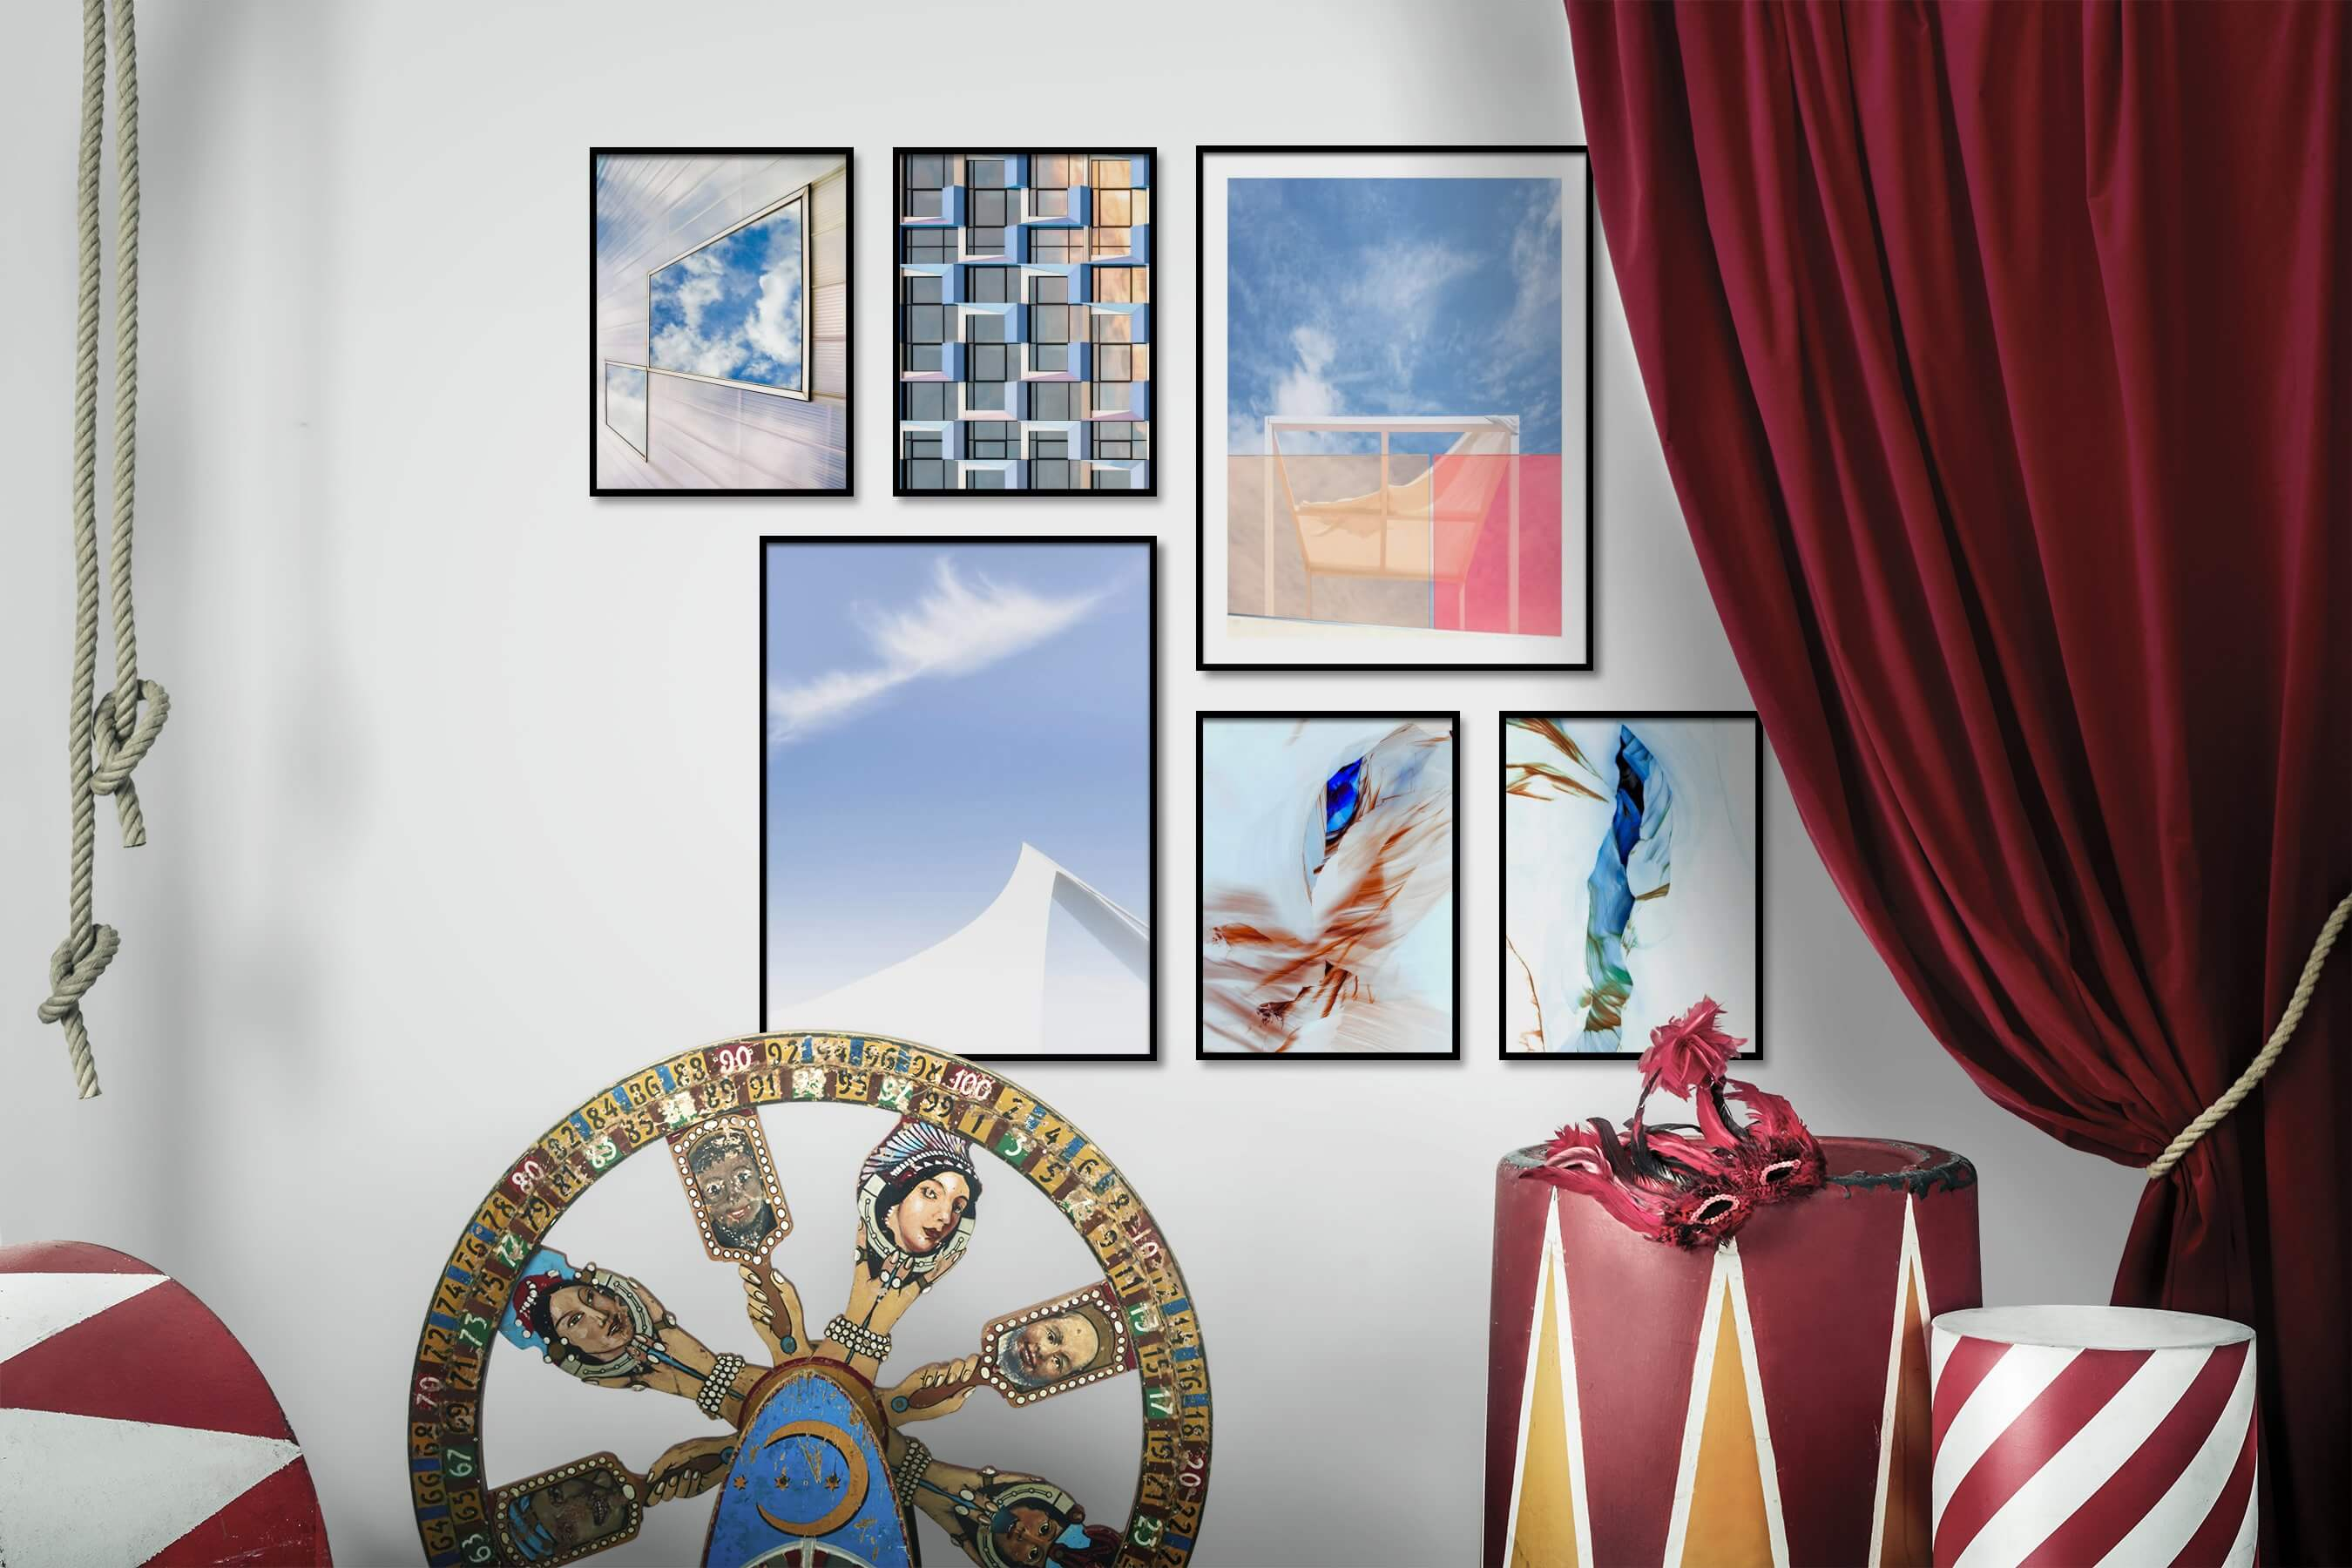 Gallery wall idea with six framed pictures arranged on a wall depicting For the Moderate, For the Maximalist, For the Minimalist, and Nature